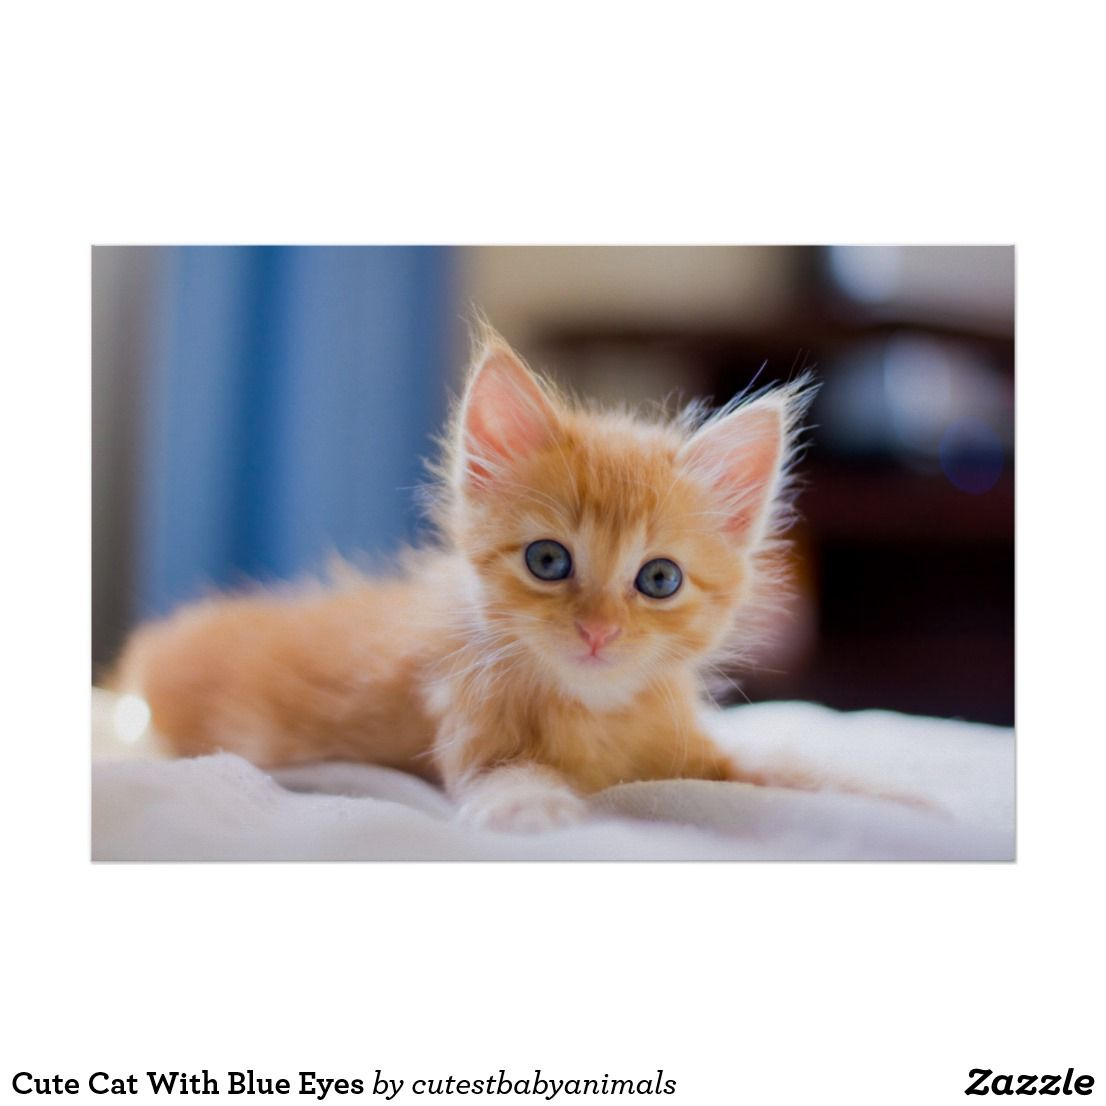 Cute Cat With Blue Eyes Poster Zazzle Com Cat With Blue Eyes Kittens Cutest Cute Cat